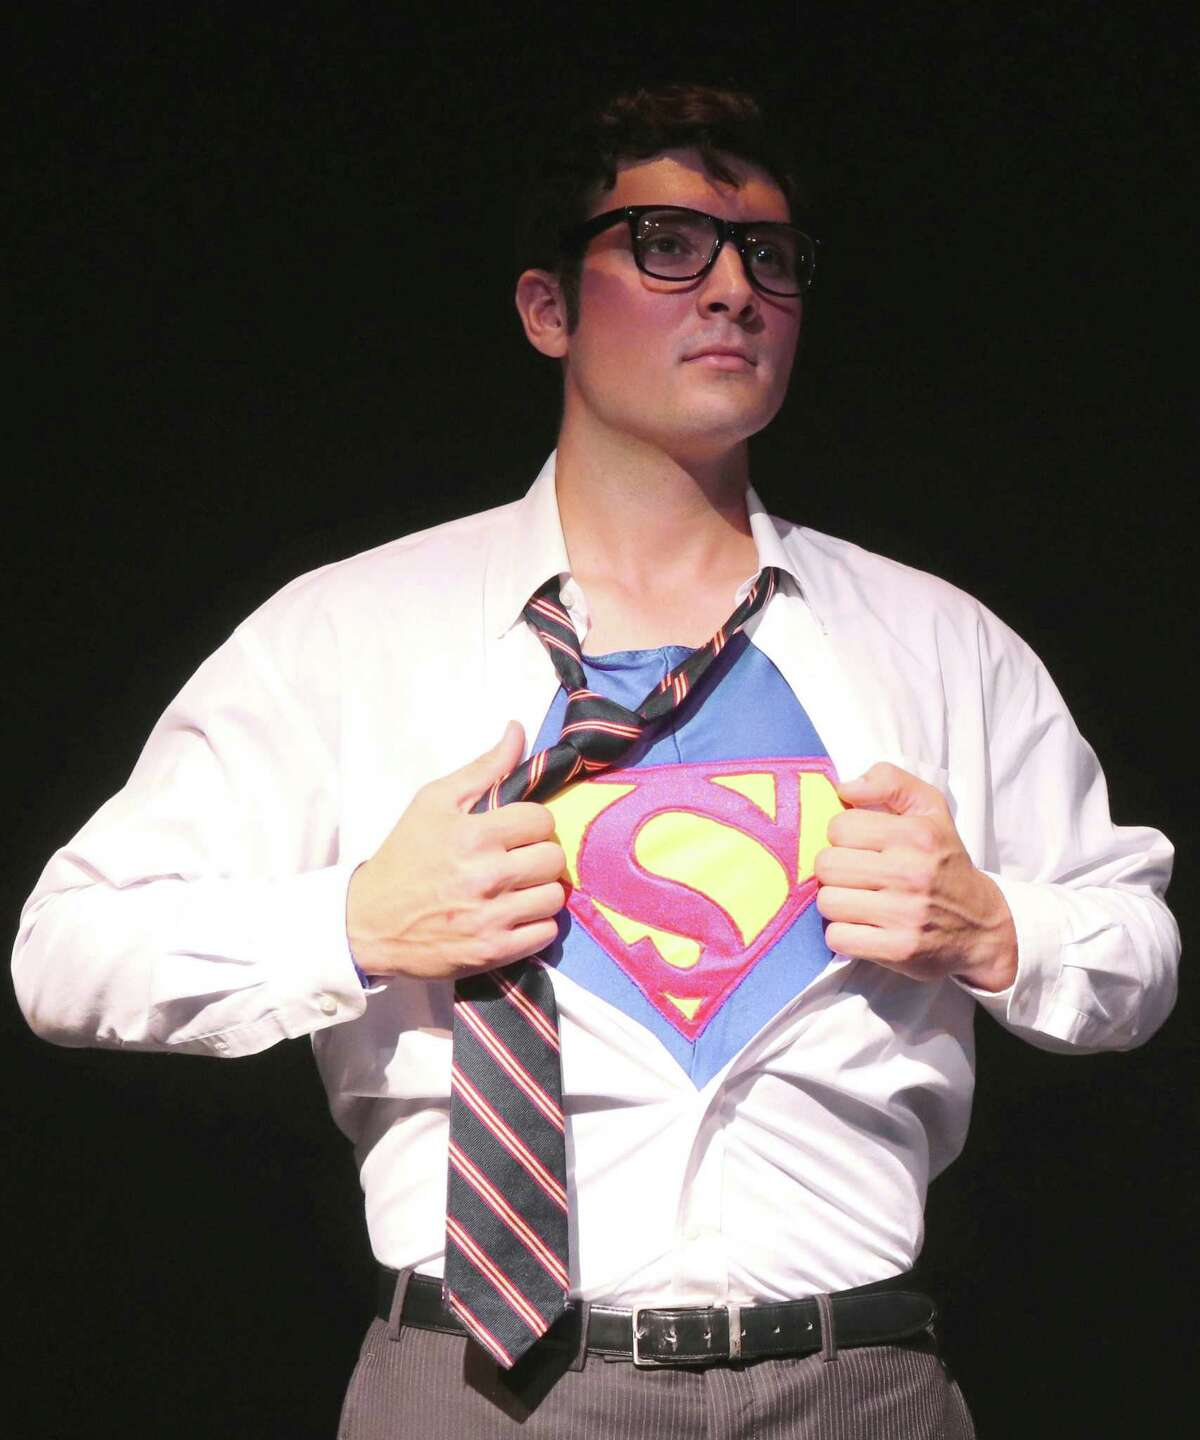 """John Schule plays Clark Kent and Superman in """"Superman, the Musical,"""" at Curtain Call's Kweskin Theatre last year. Curtain Call was the top fundraiser in the annual Giving Day campaign run by Fairfield County's Community Foundation for the sixth straight year"""